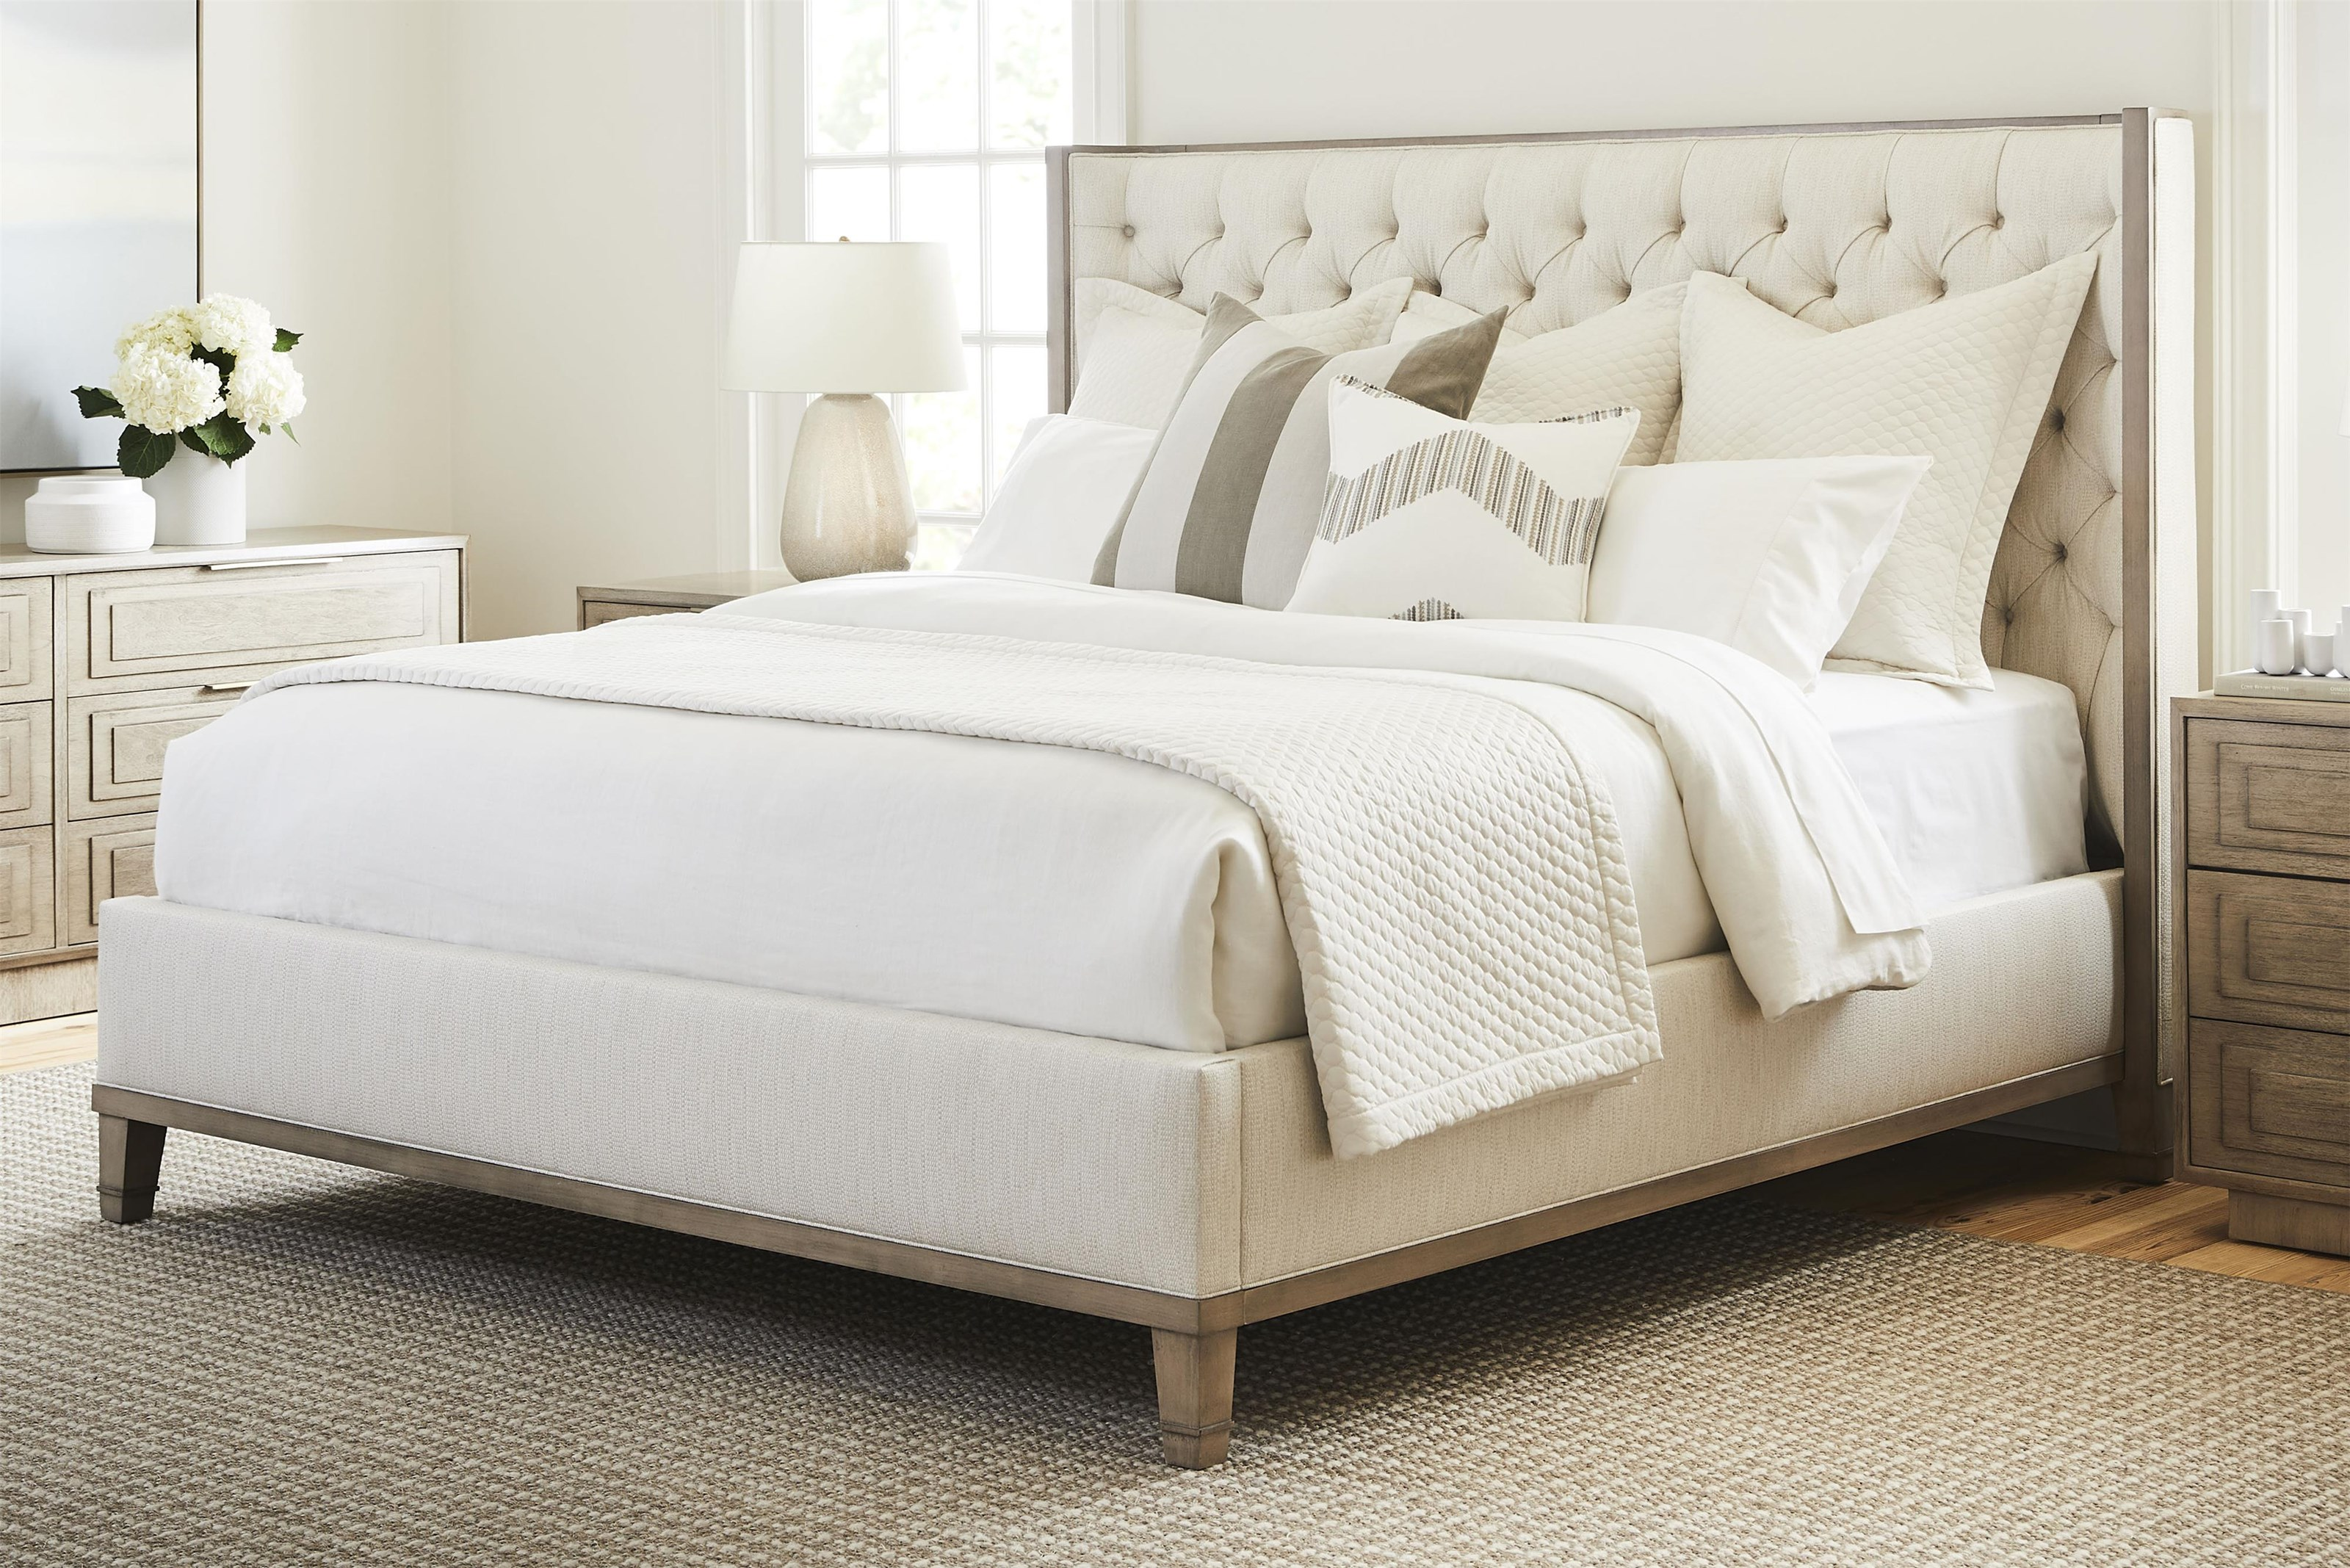 Bowers - Michael Weiss King Tufted Headboard Bed by Vanguard Furniture at Baer's Furniture